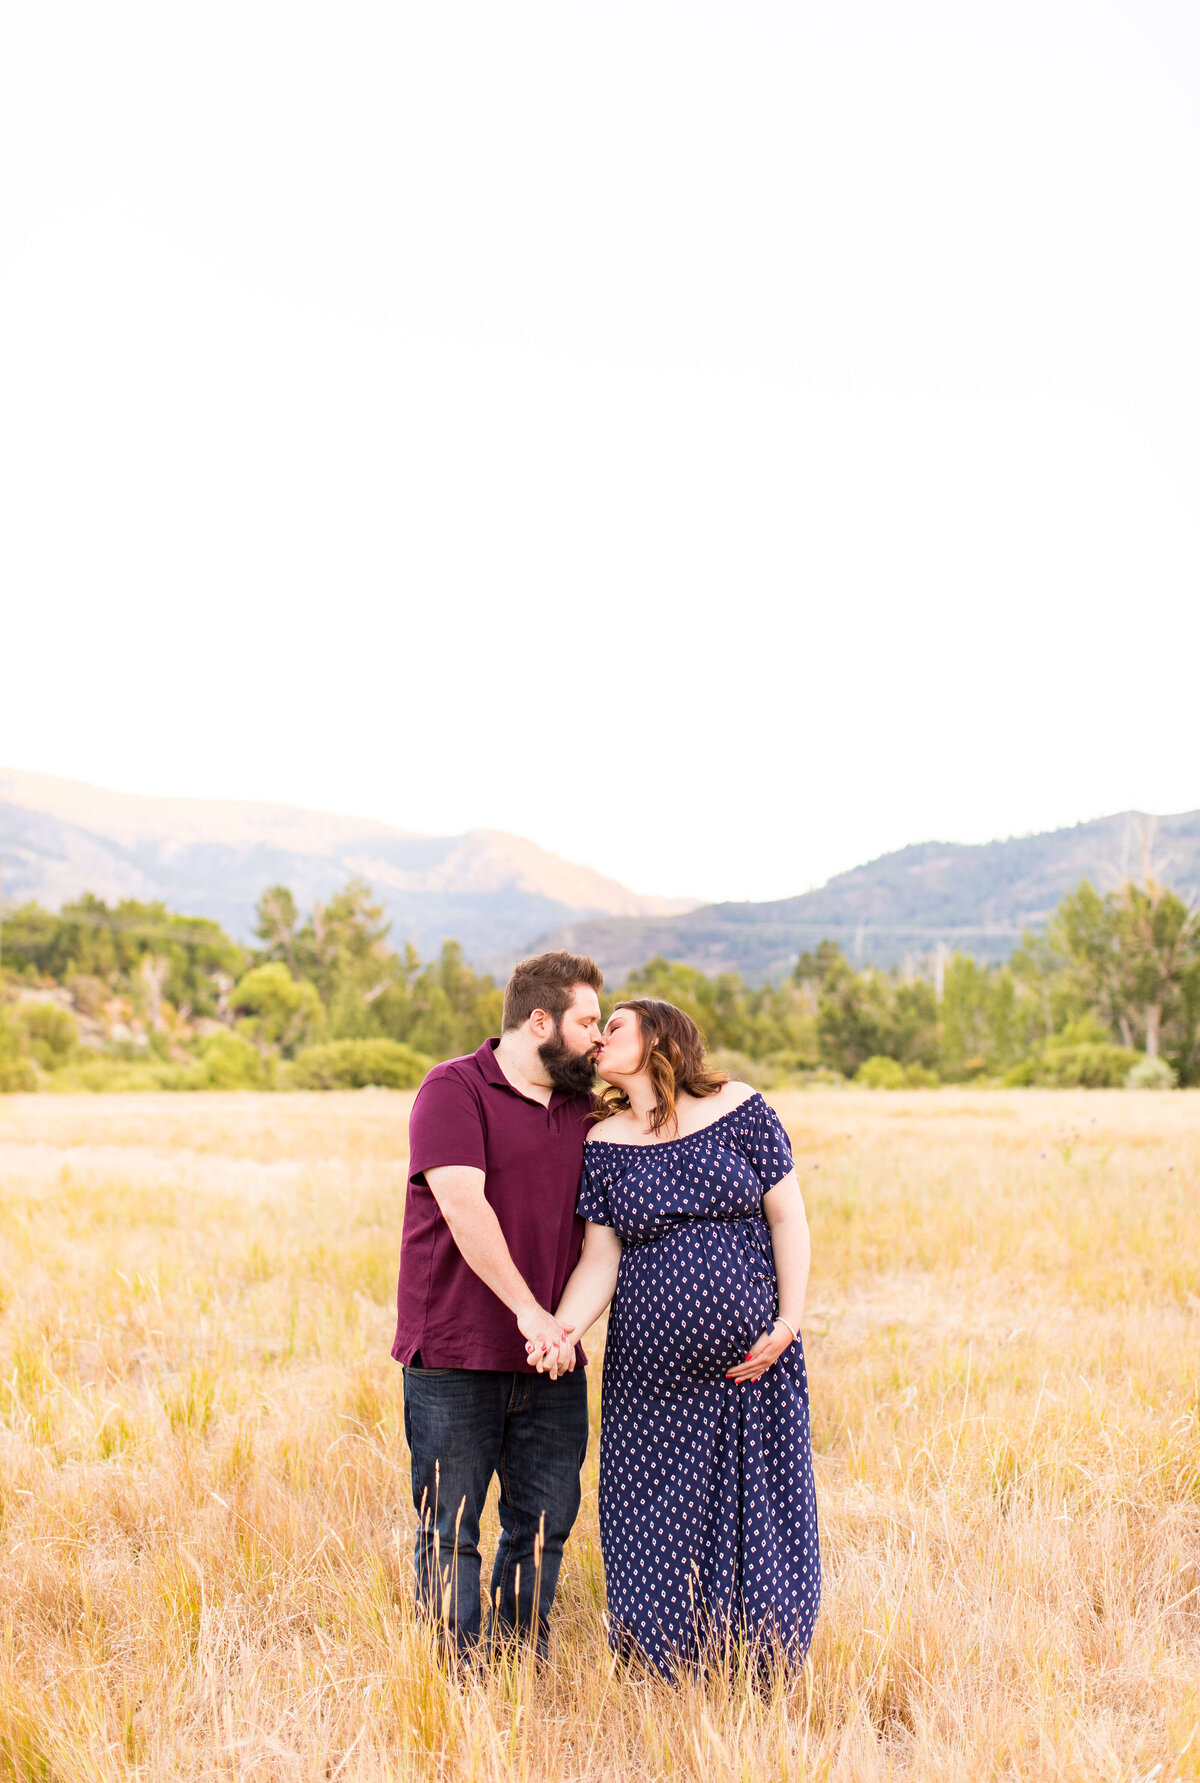 Ashley&JoelMaternitySession2020-66